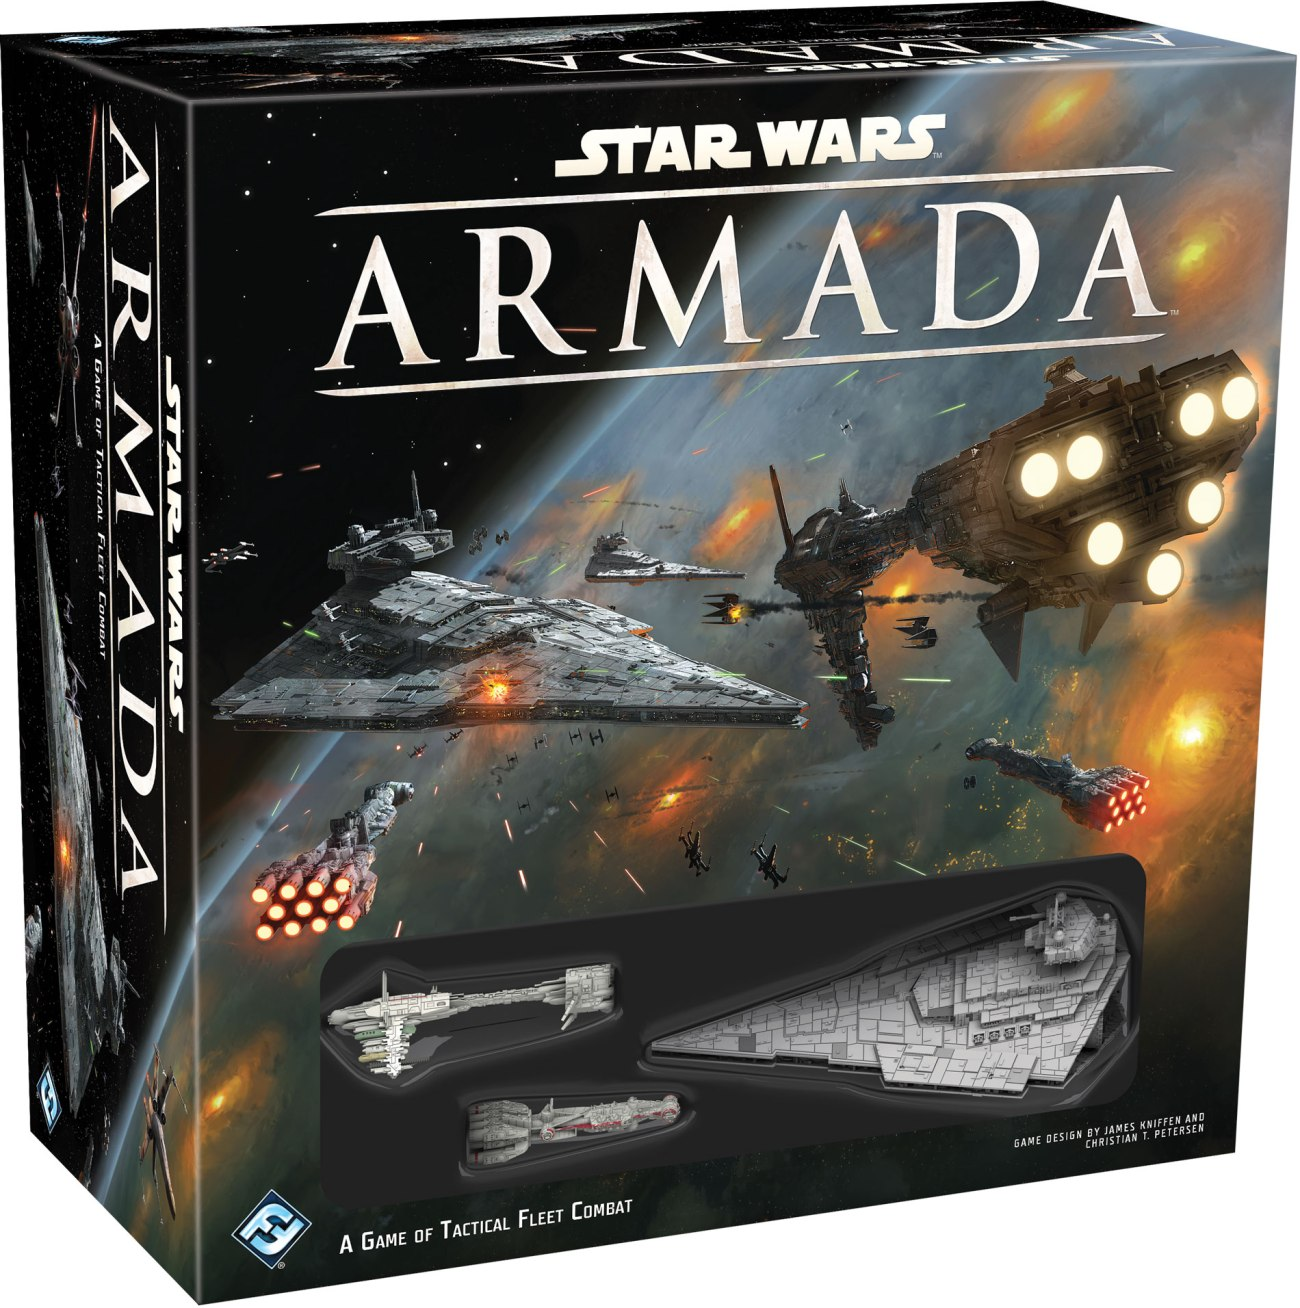 Star_Wars_Armada_box